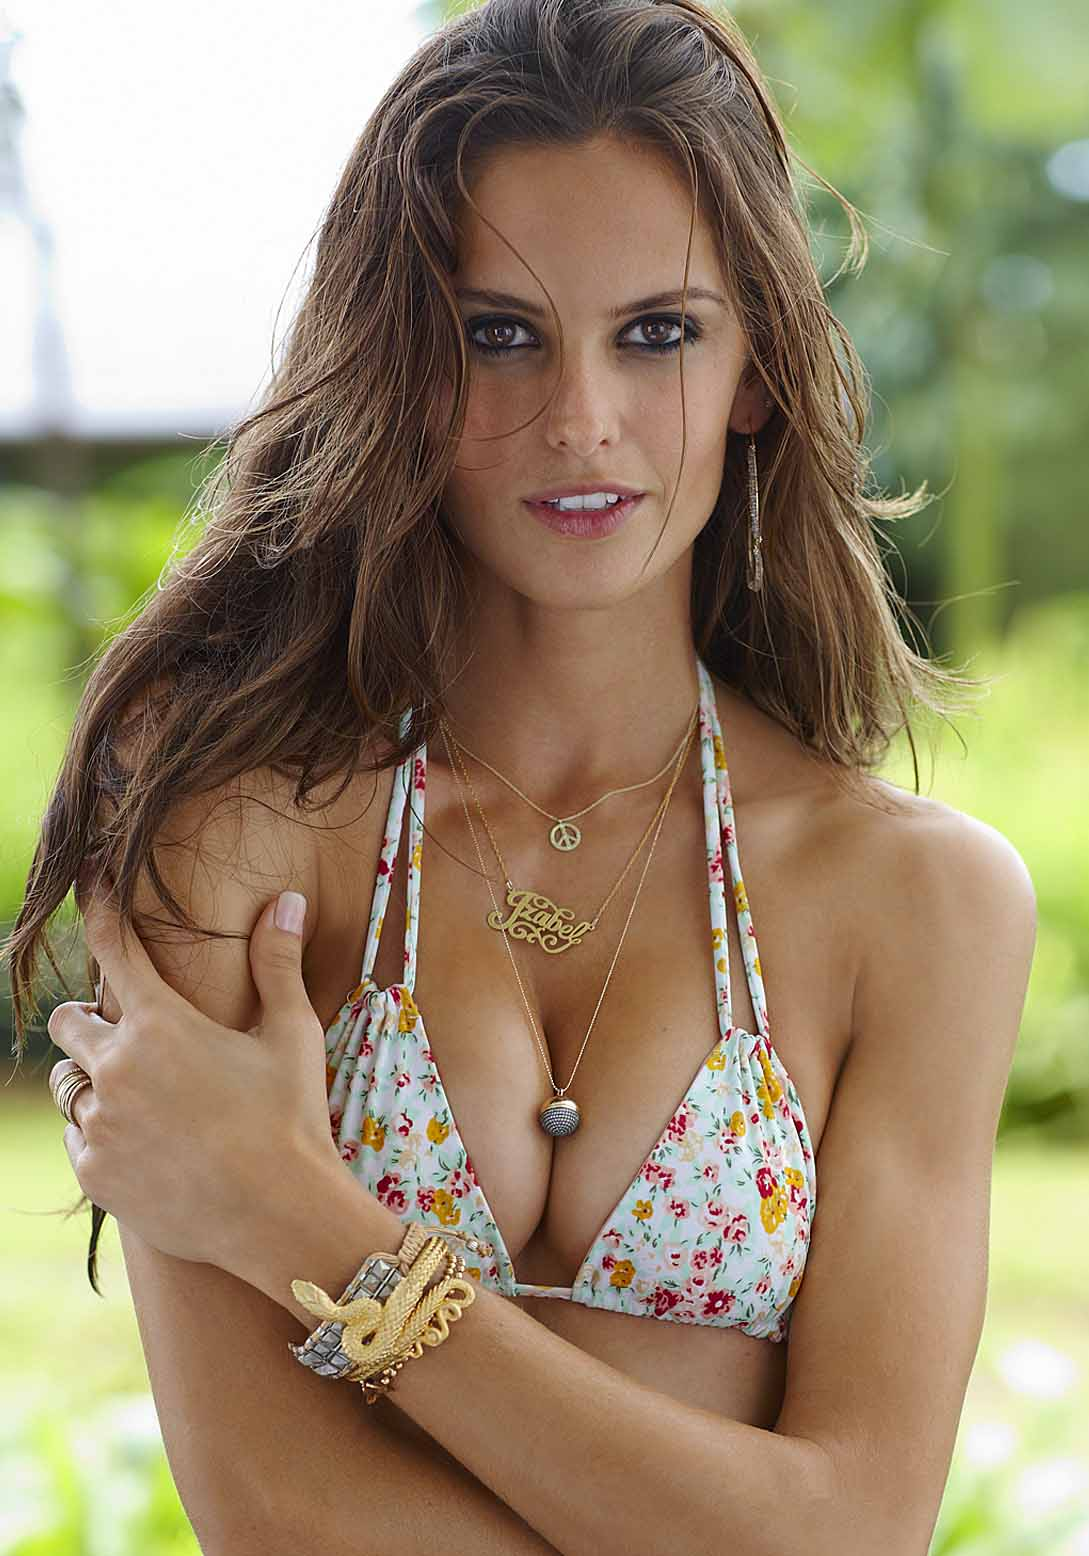 http://2.bp.blogspot.com/-Zz-eI51yK98/TWbTWzuO9_I/AAAAAAACD-k/LptlYnmZMOc/s1600/Sports+Illustrated+Swimsuit+Model.jpg